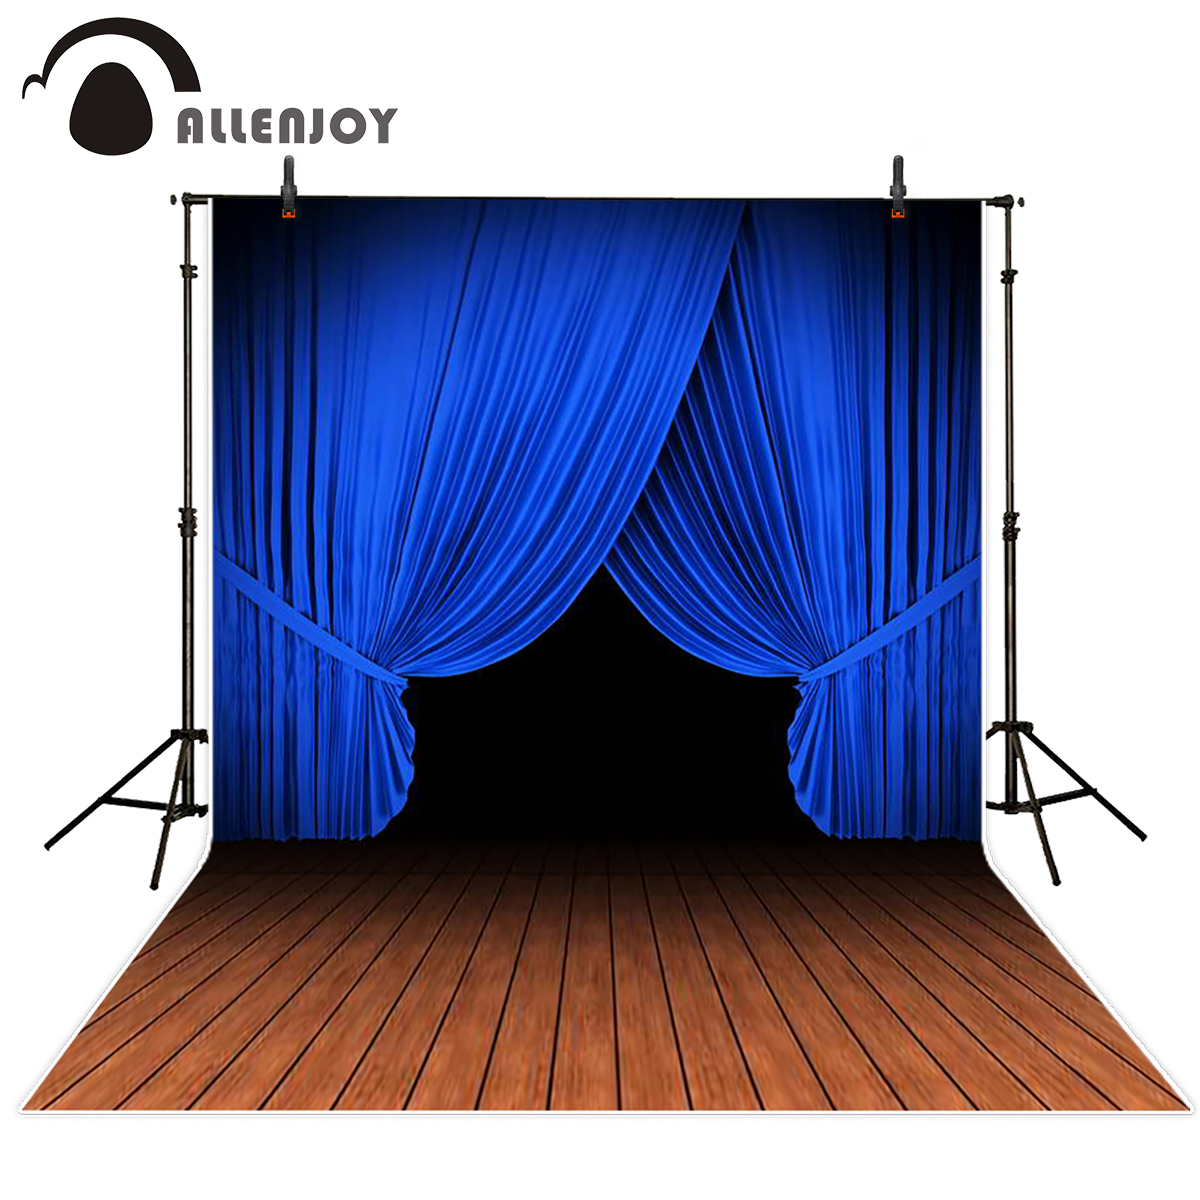 Allenjoy photography backdrop stage dark blue wood floor backgrounds for video original design newborn vinyl cloth fabric 10ft 20ft romantic wedding backdrop f 894 fabric background idea wood floor digital photography backdrop for picture taking